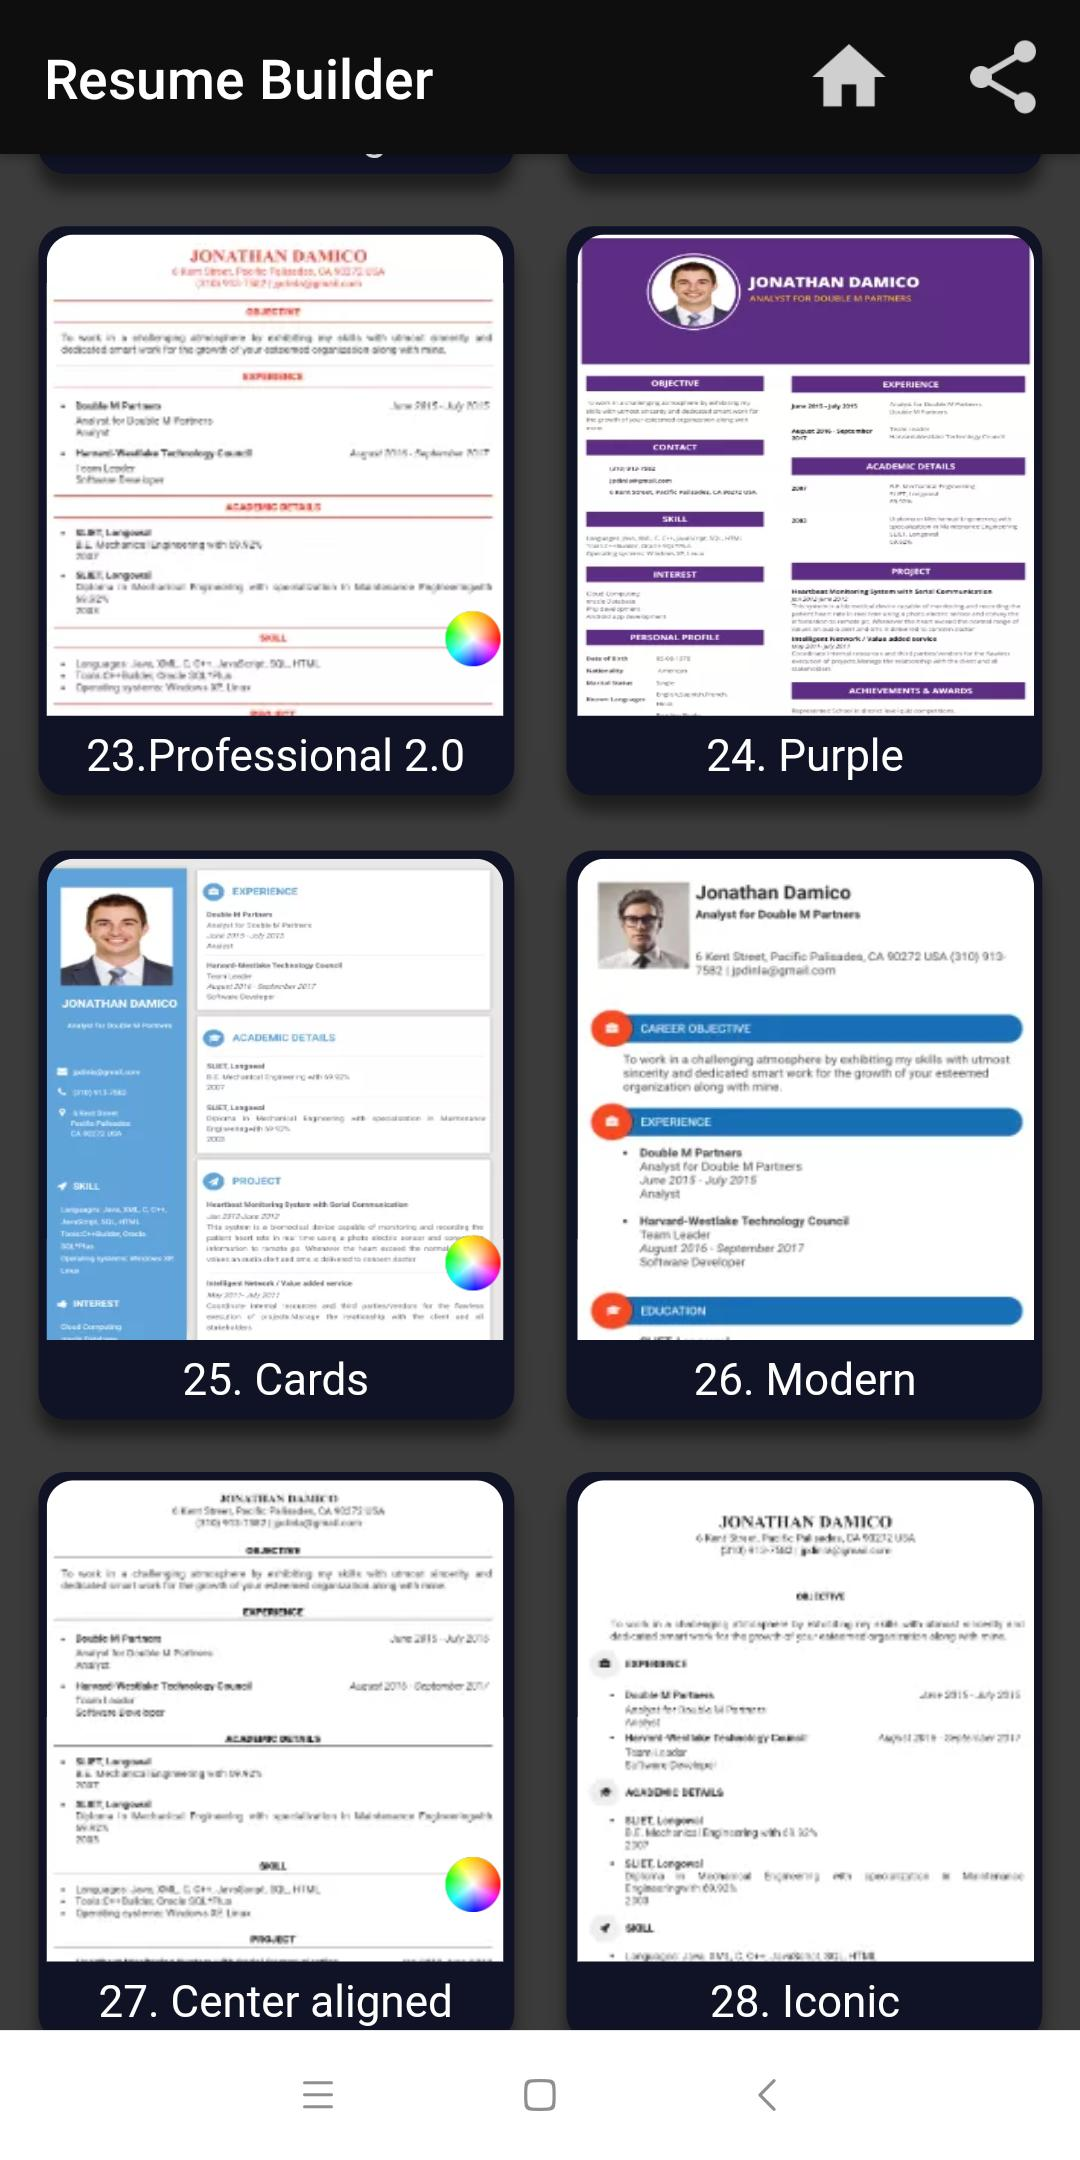 Resume Builder Free Cv Maker Templates Formats App For